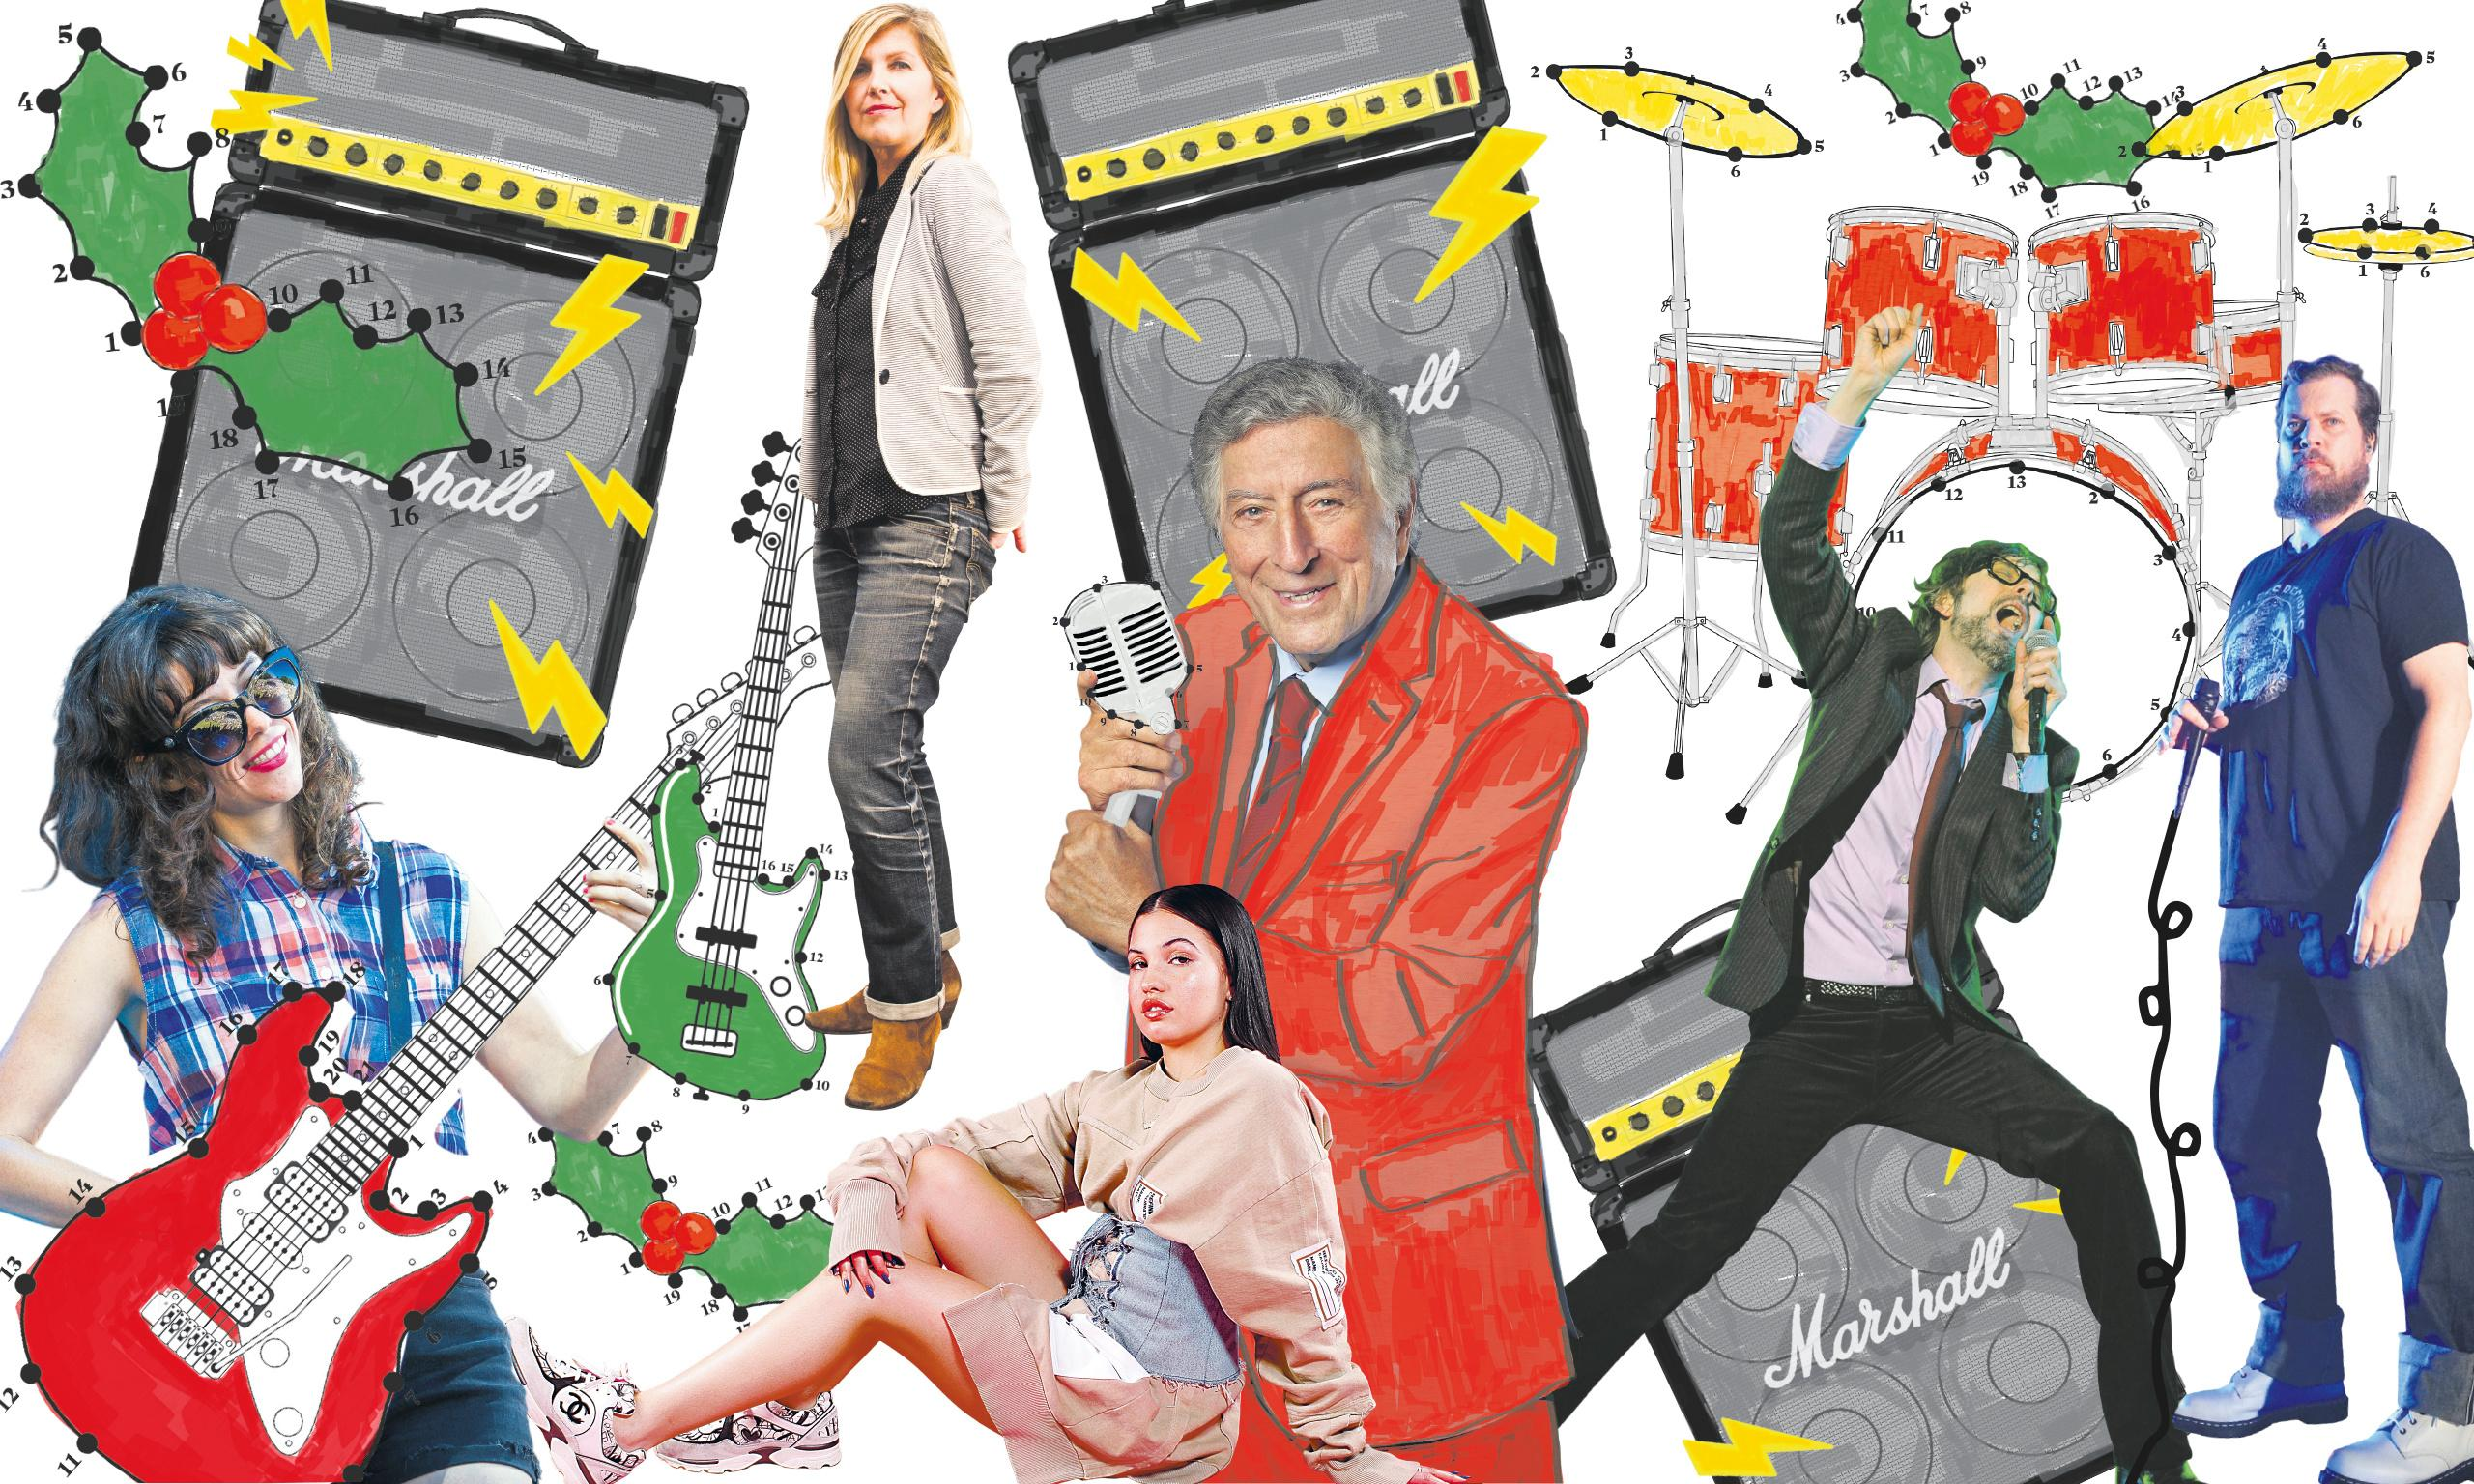 My perfect Christmas music playlist, by Jarvis Cocker, Tony Bennett, Sarah Cracknell, Mabel, Natalie Prass and John Grant